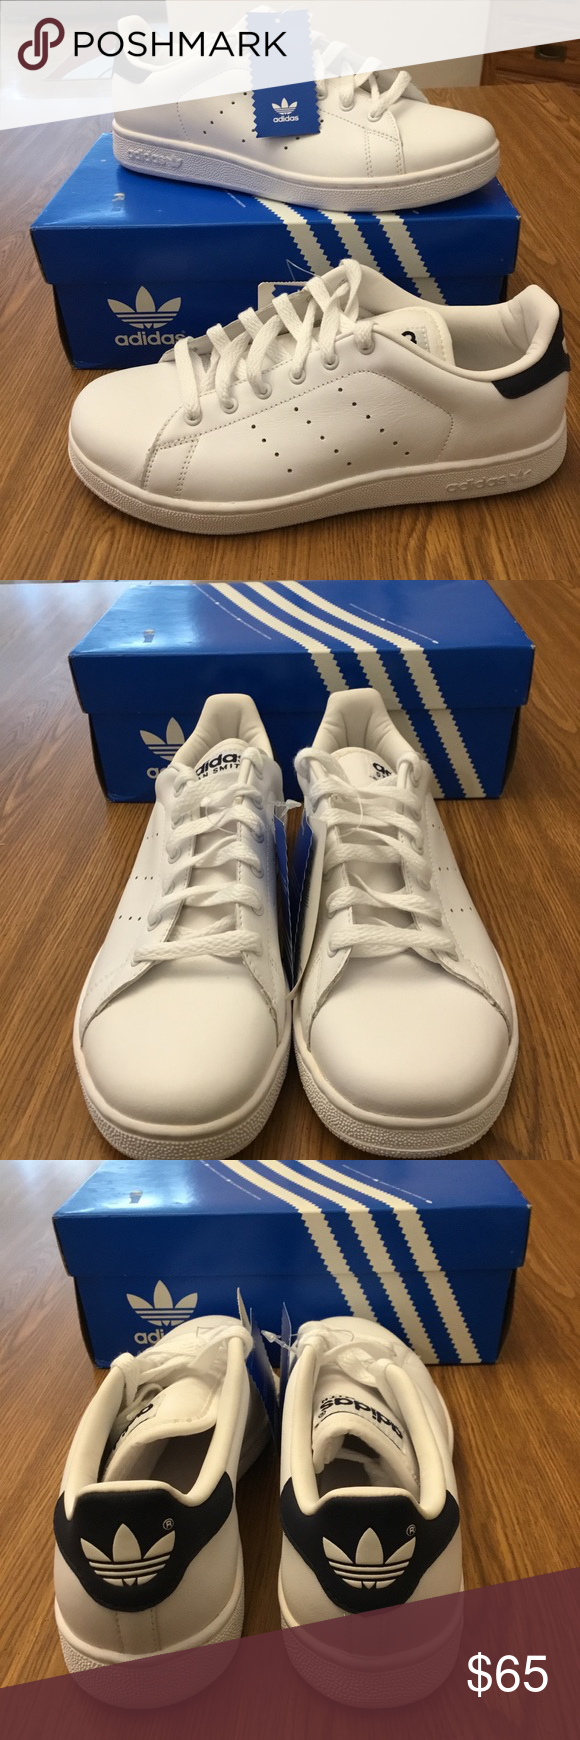 low priced a1151 6eb79 ADIDAS WOMEN'S SNEAKERS Size (5.5) white with navy blue ...